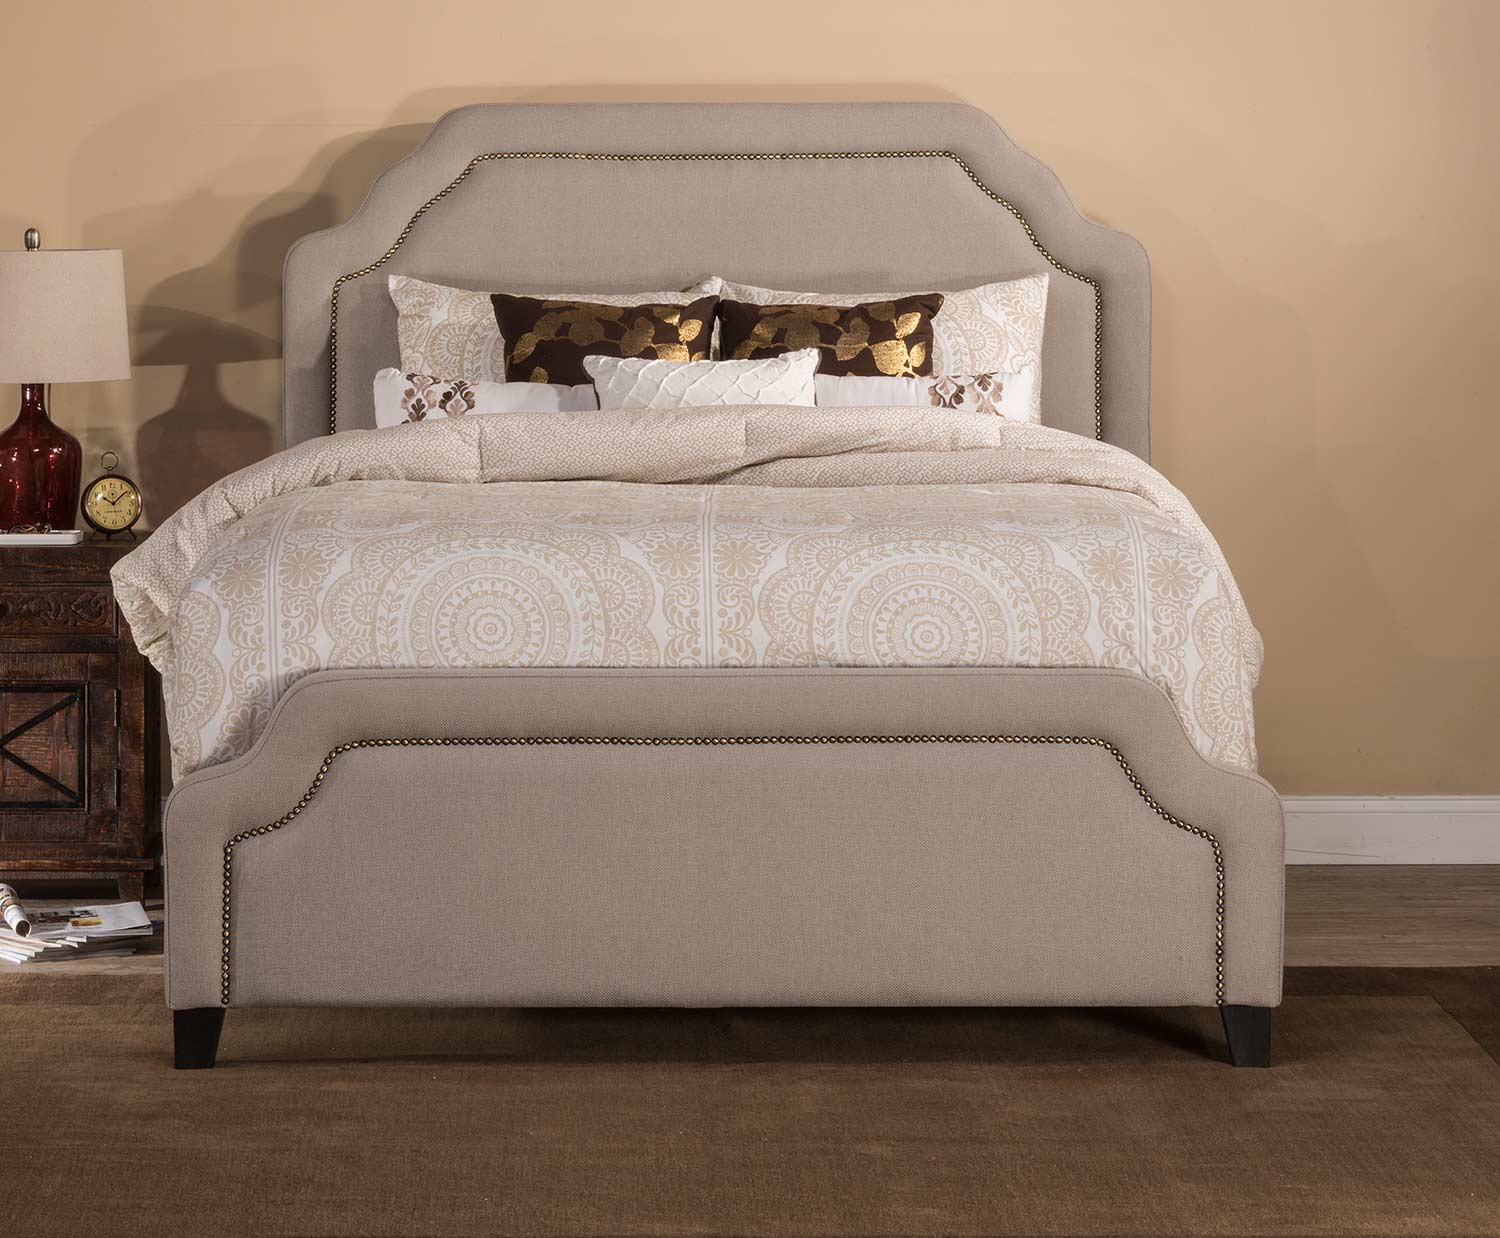 Hillsdale Carlyle Bed - Light Taupe